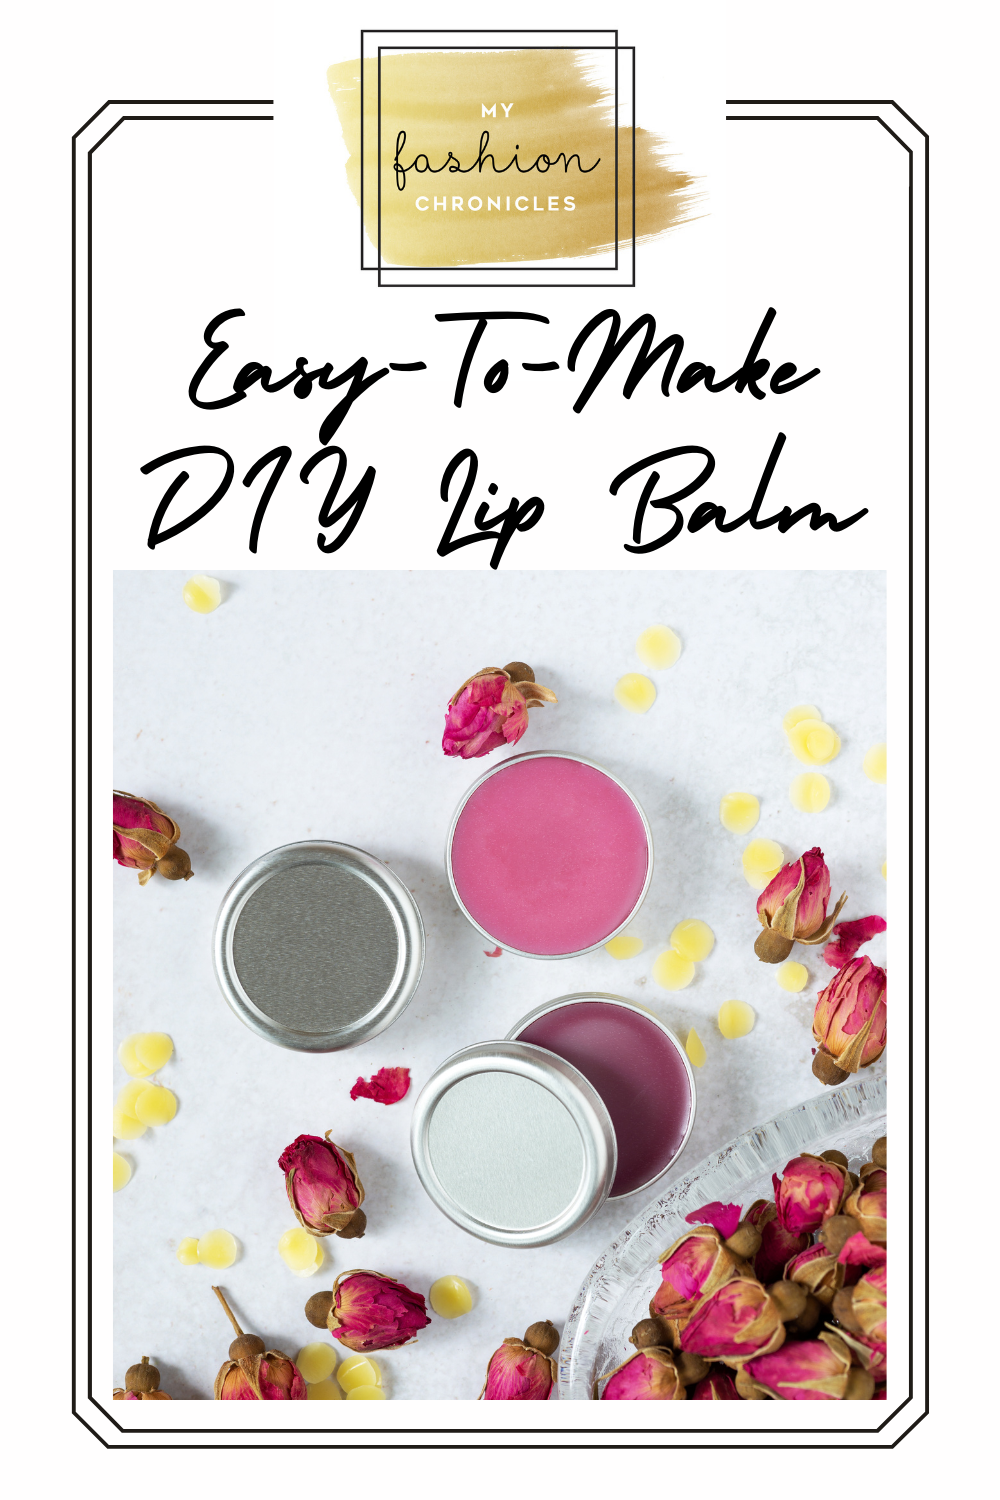 Myfashionchronicles.com is all about looking and feeling great! Keep your lips moisturized and save some money with this super easy and fun-to-make DIY lip balm!